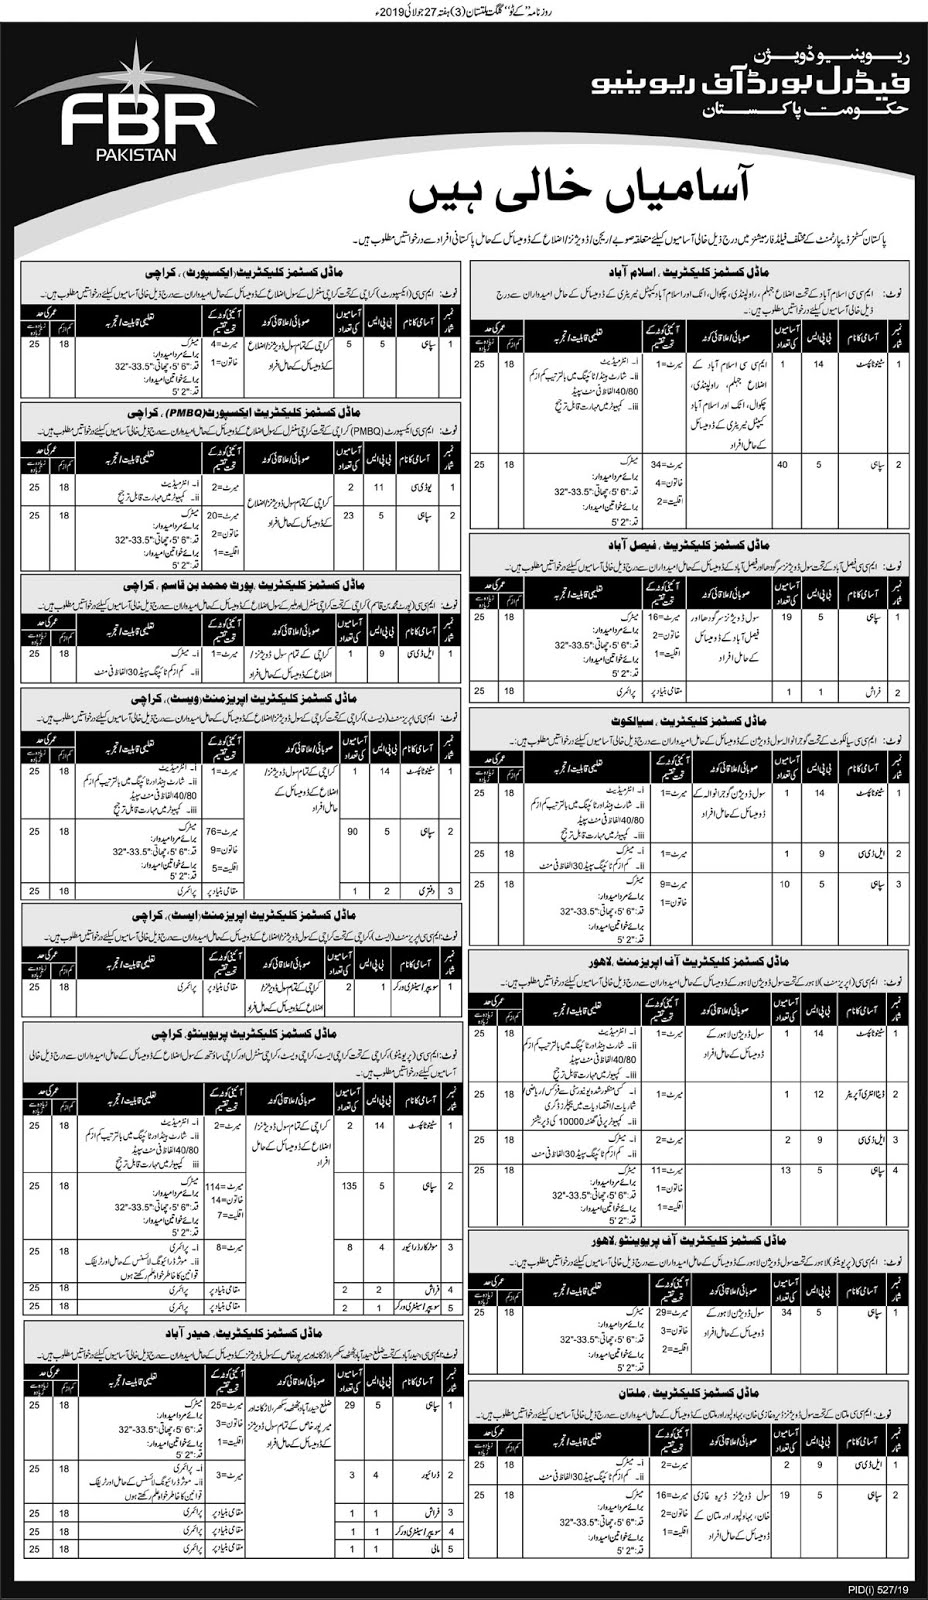 Federal Board Of Revenue FBR Jobs Latest 2019 Download OTS Form